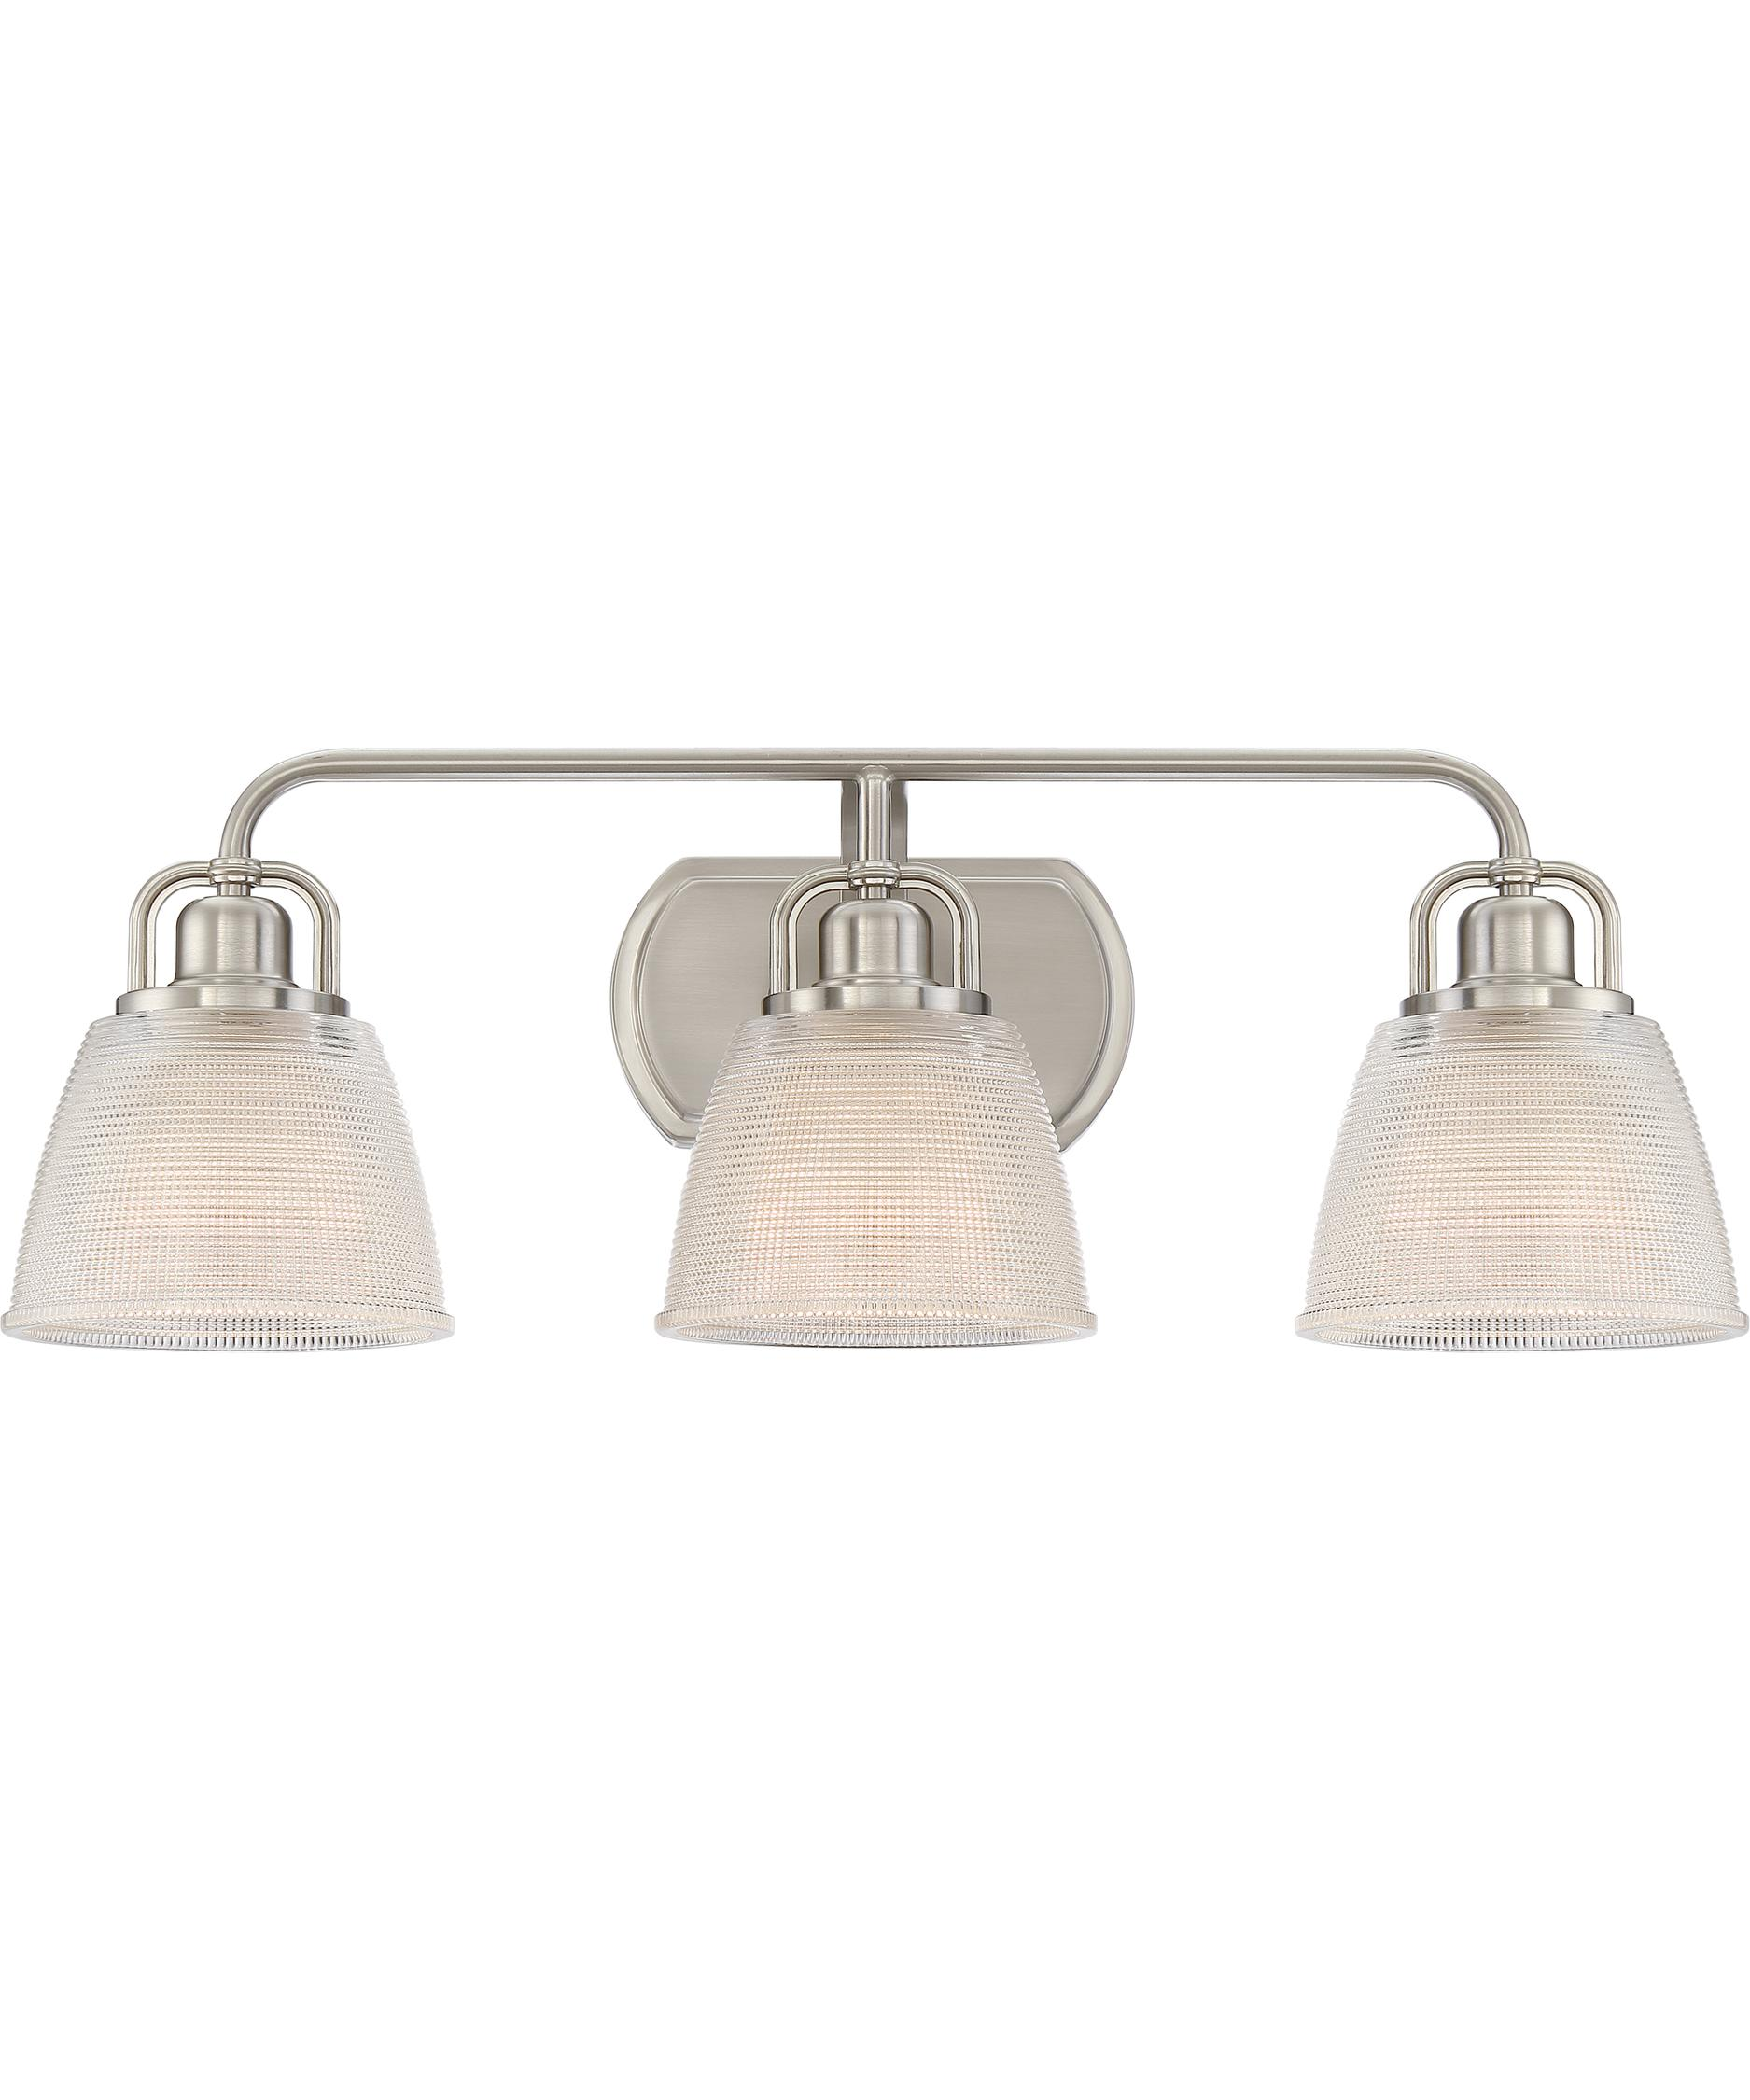 Bathroom Vanity Lights For Sale quoizel dbn8603 dublin 25 inch wide bath vanity light | capitol